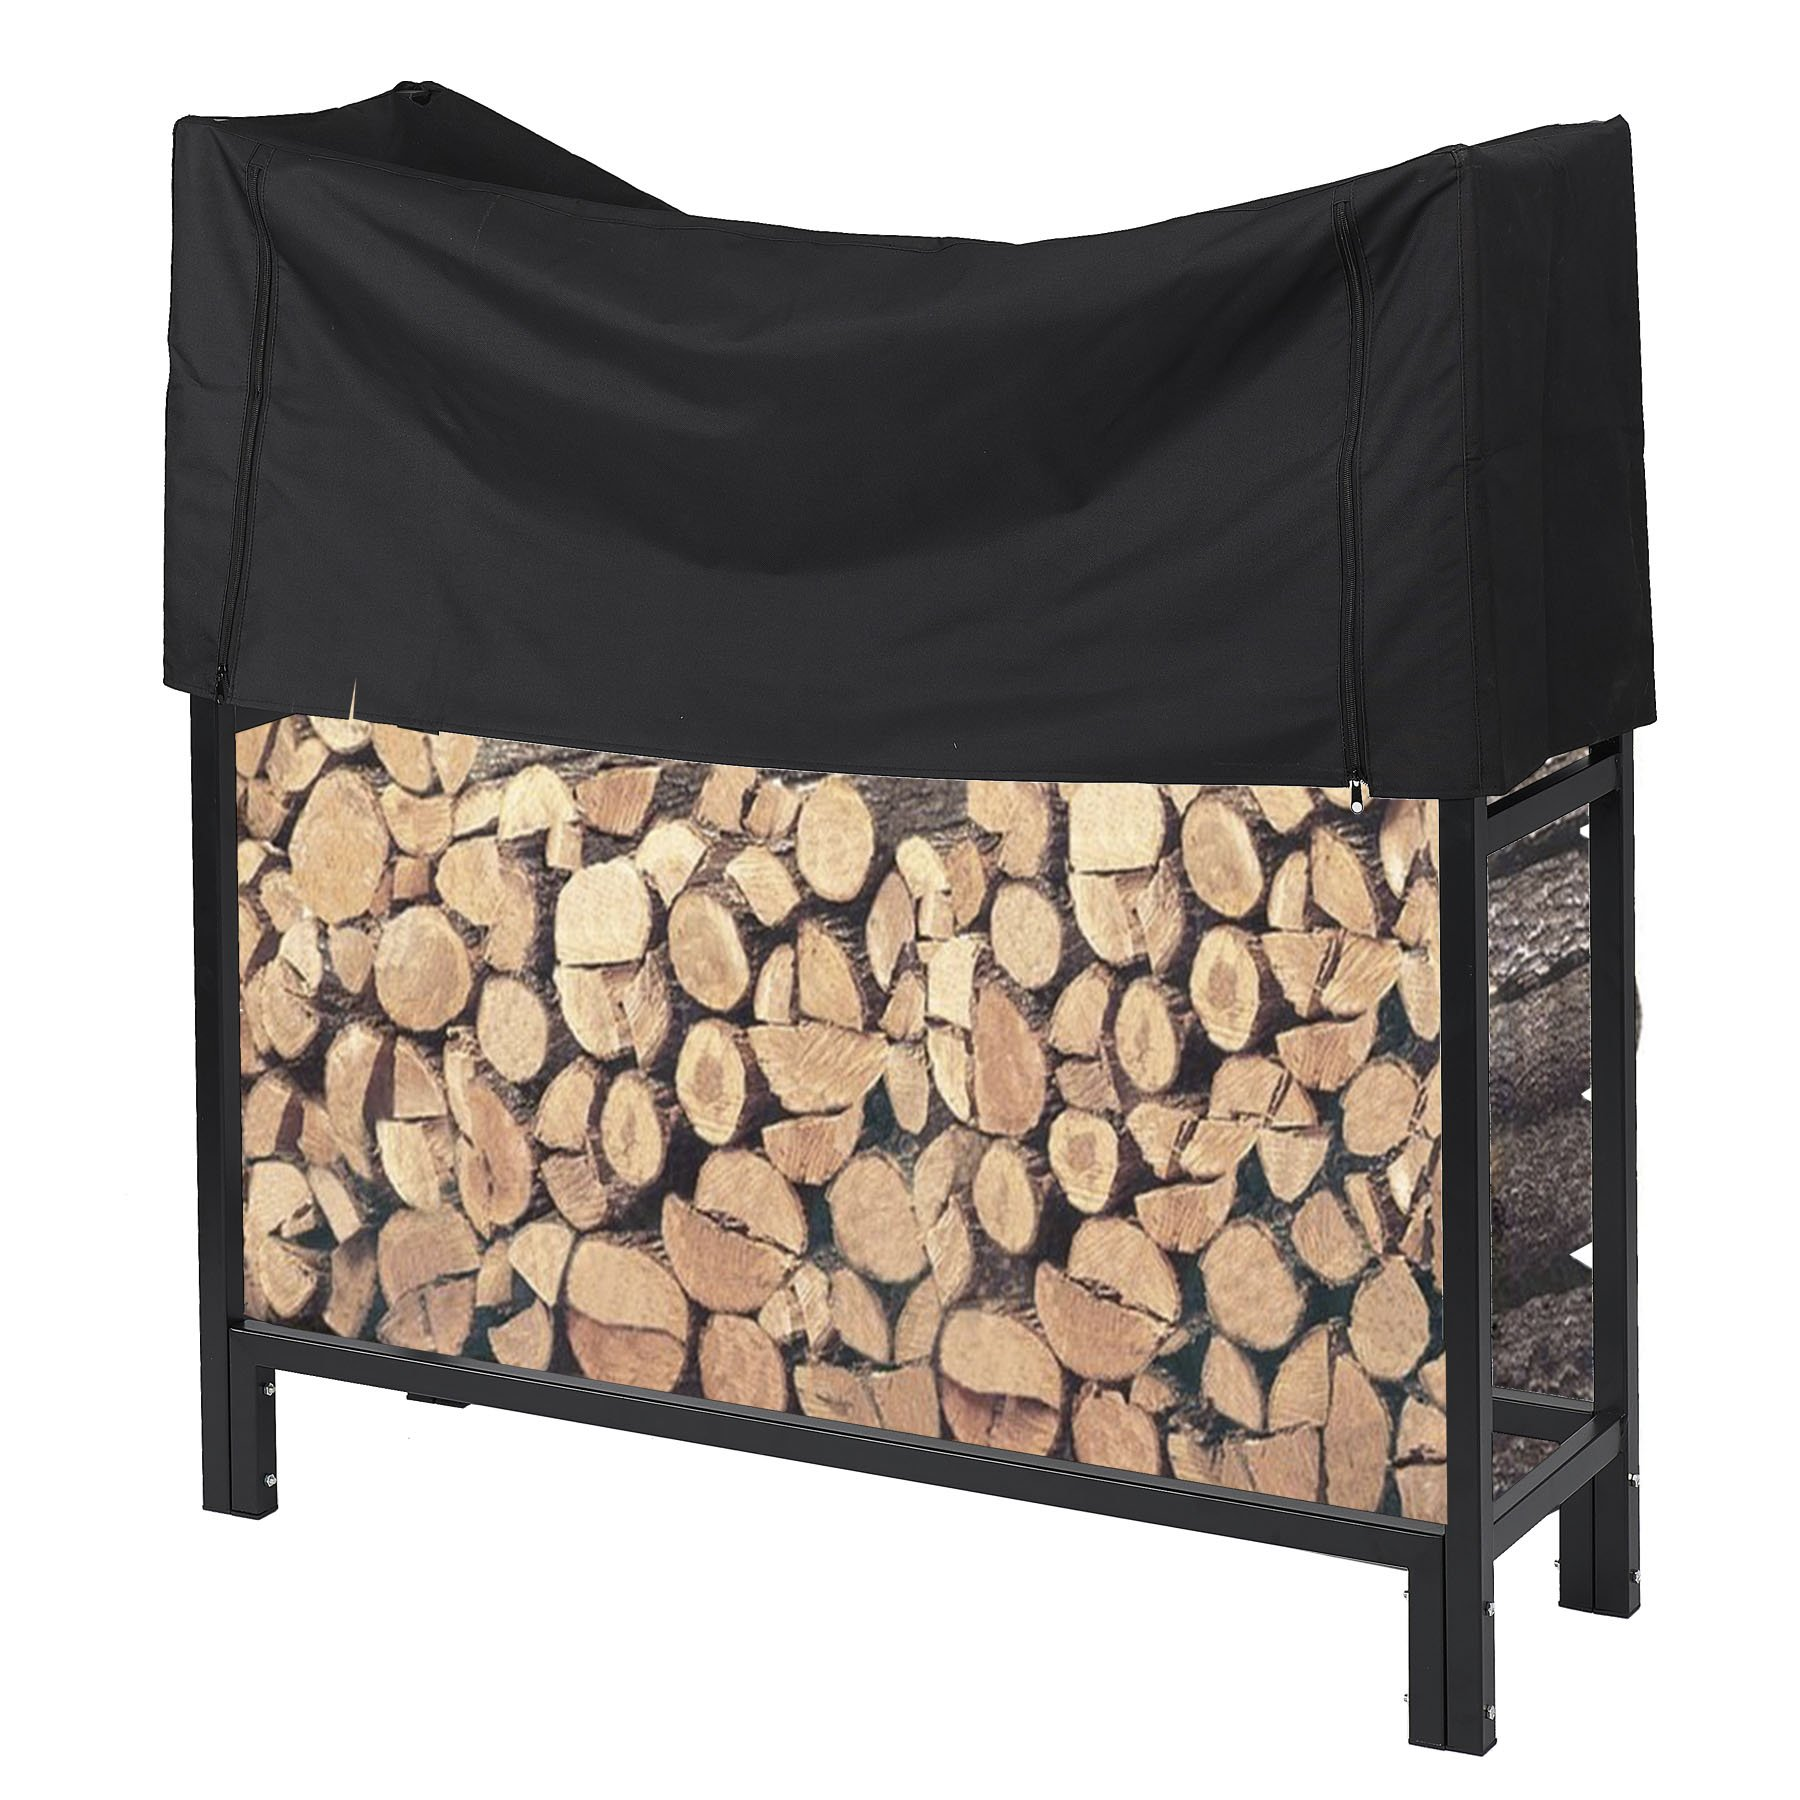 Pinty Ultra Duty Outdoor Firewood Rack with Cover 4 Foot Fireplace Wood Holder